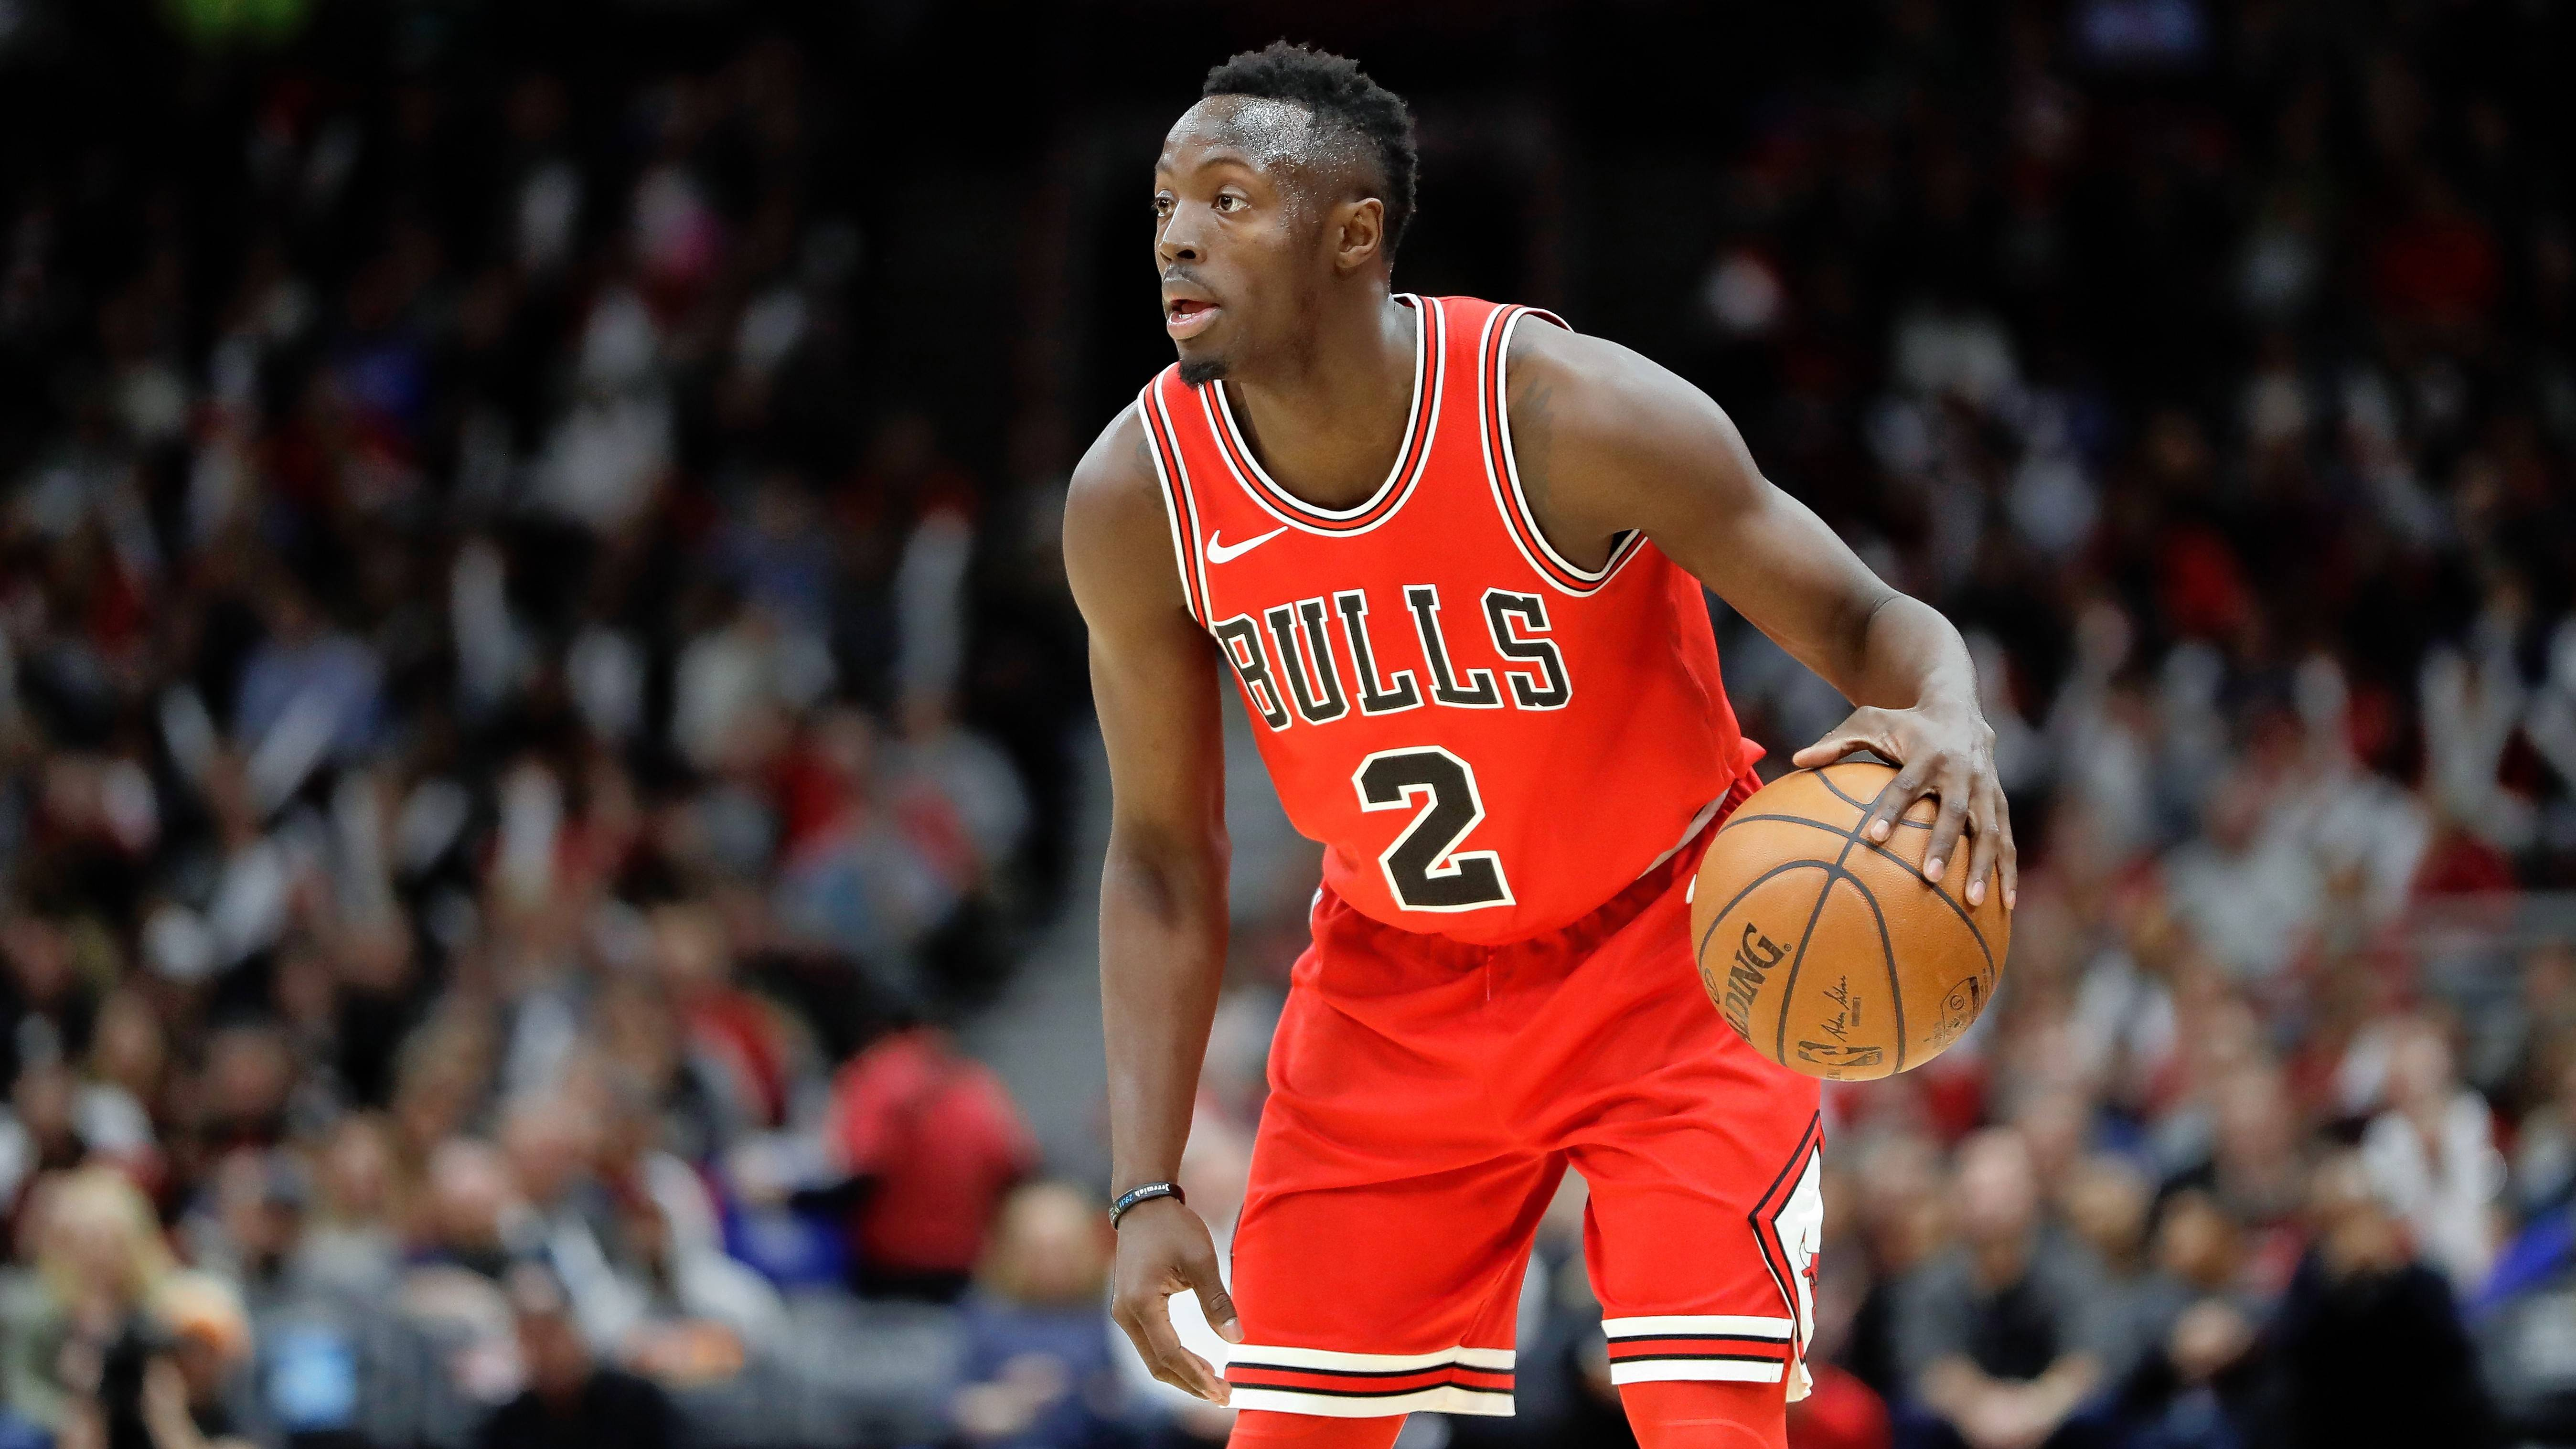 The Bulls wanted to get a better look at their younger guys after the all-star break, but guard Jerian Grant, 25, is one of the players who went to the bench. Coach Fred Hoiberg talked about that scenario on Sunday.